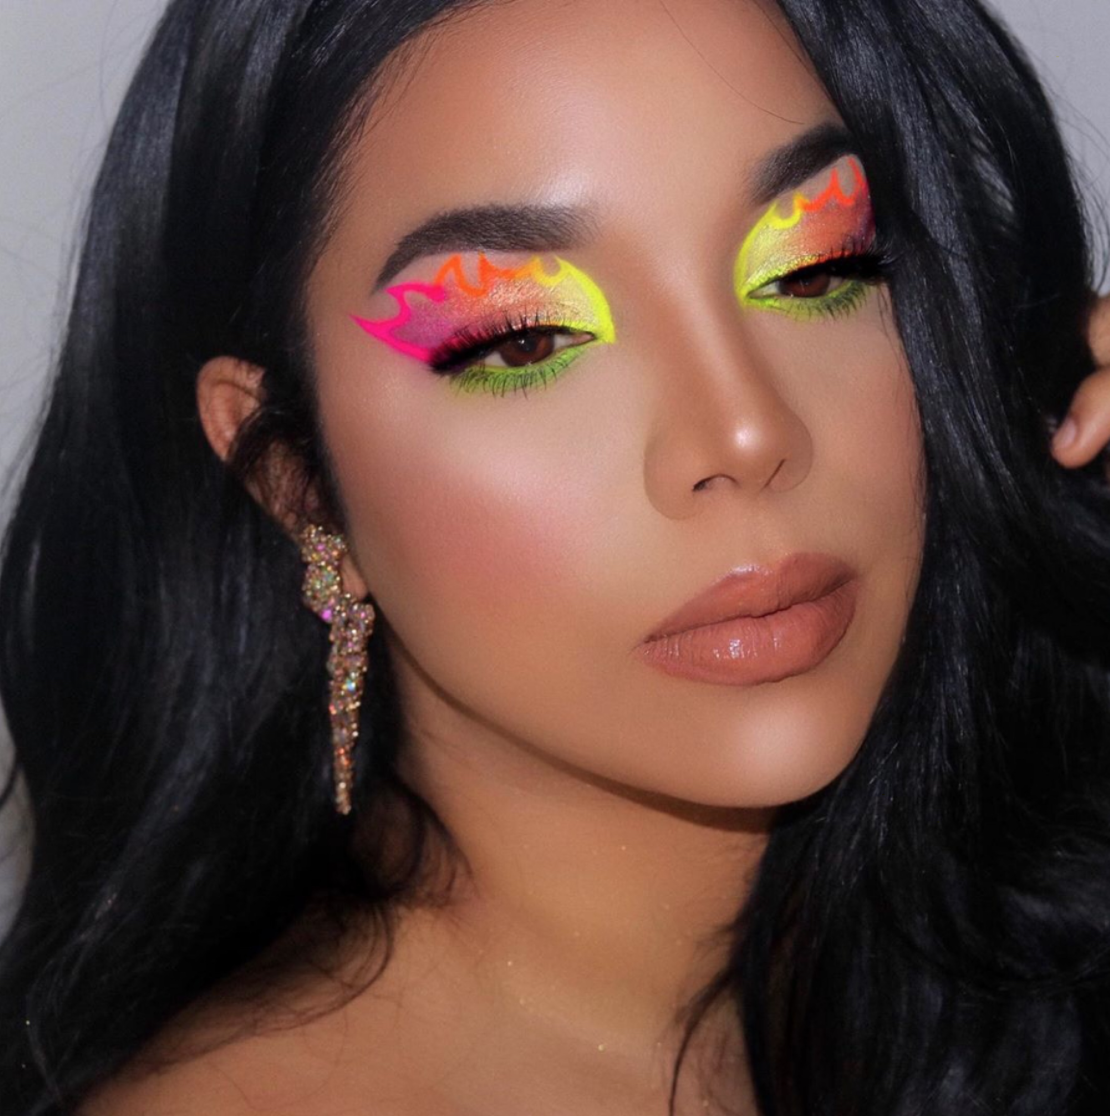 A model shows off a vibrant makeup look created with Suva Beauty products.